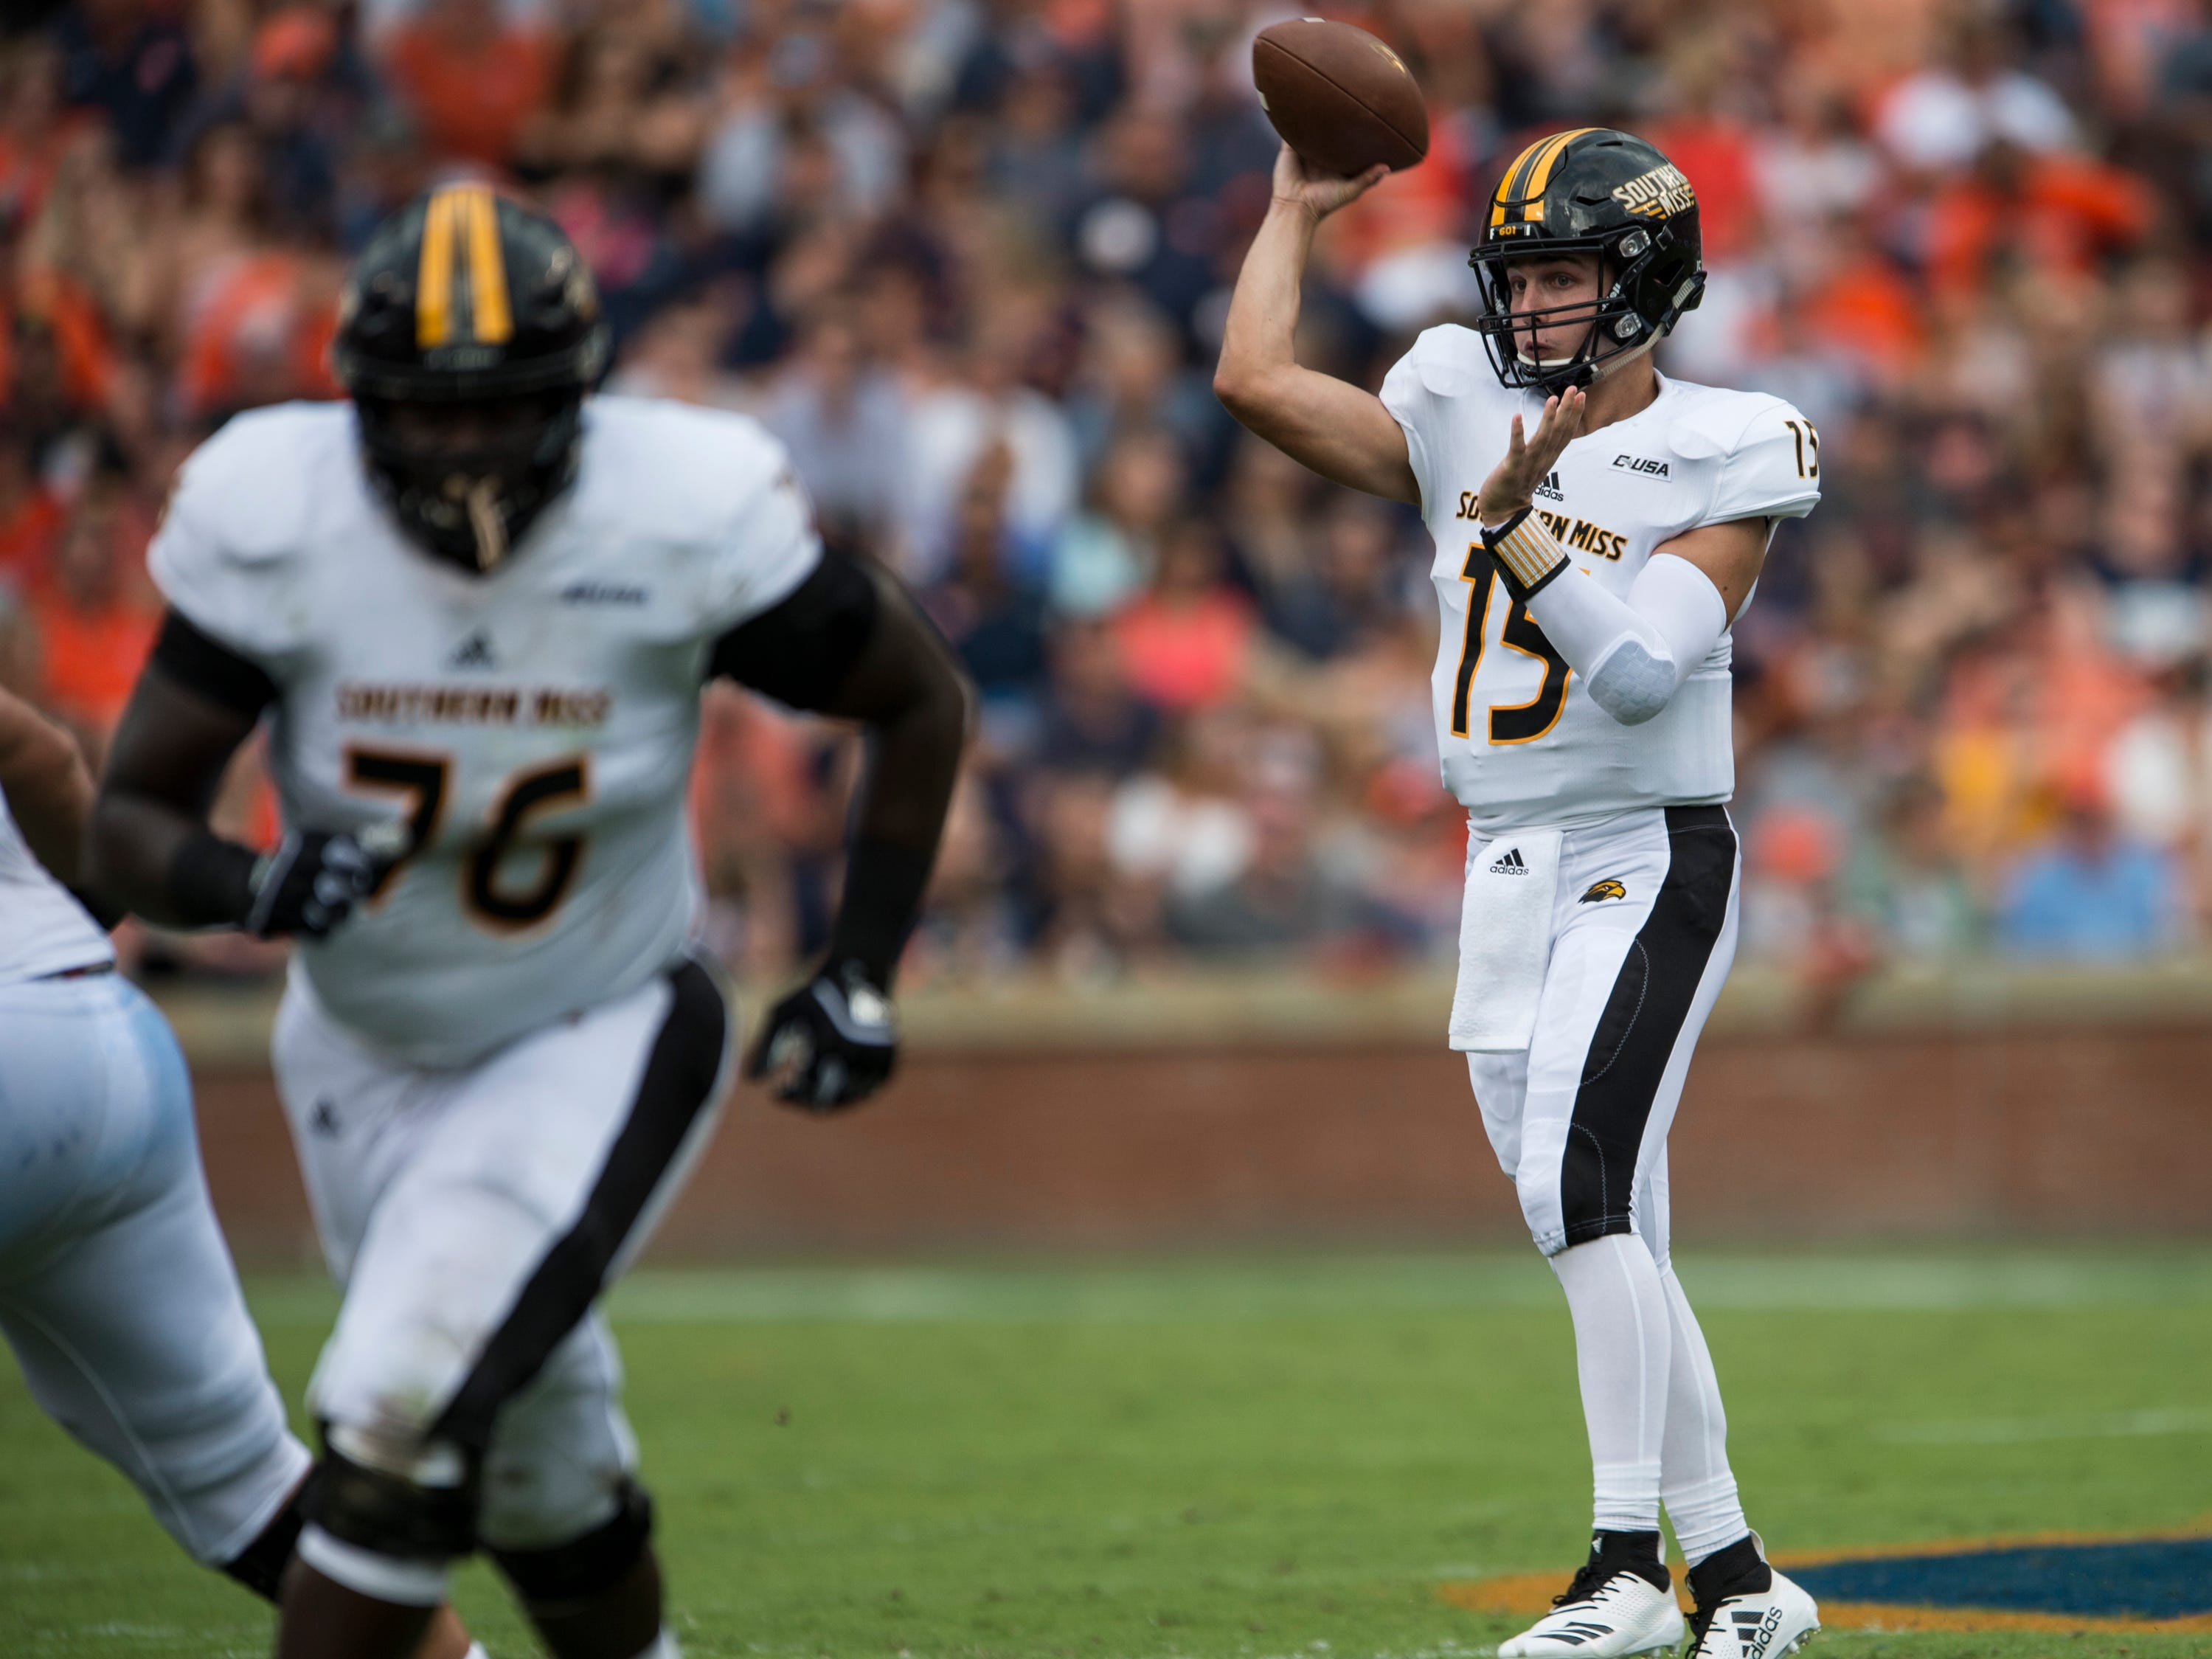 Southern Miss' Jack Abraham (15) throws the ball down the field against  Auburn at Jordan-Hare Stadium in Auburn, Ala., on Saturday, Sept. 29, 2018. Auburn leads Southern Miss 14-3, the game went into a weather delay with 4:27 left in the second quarter.